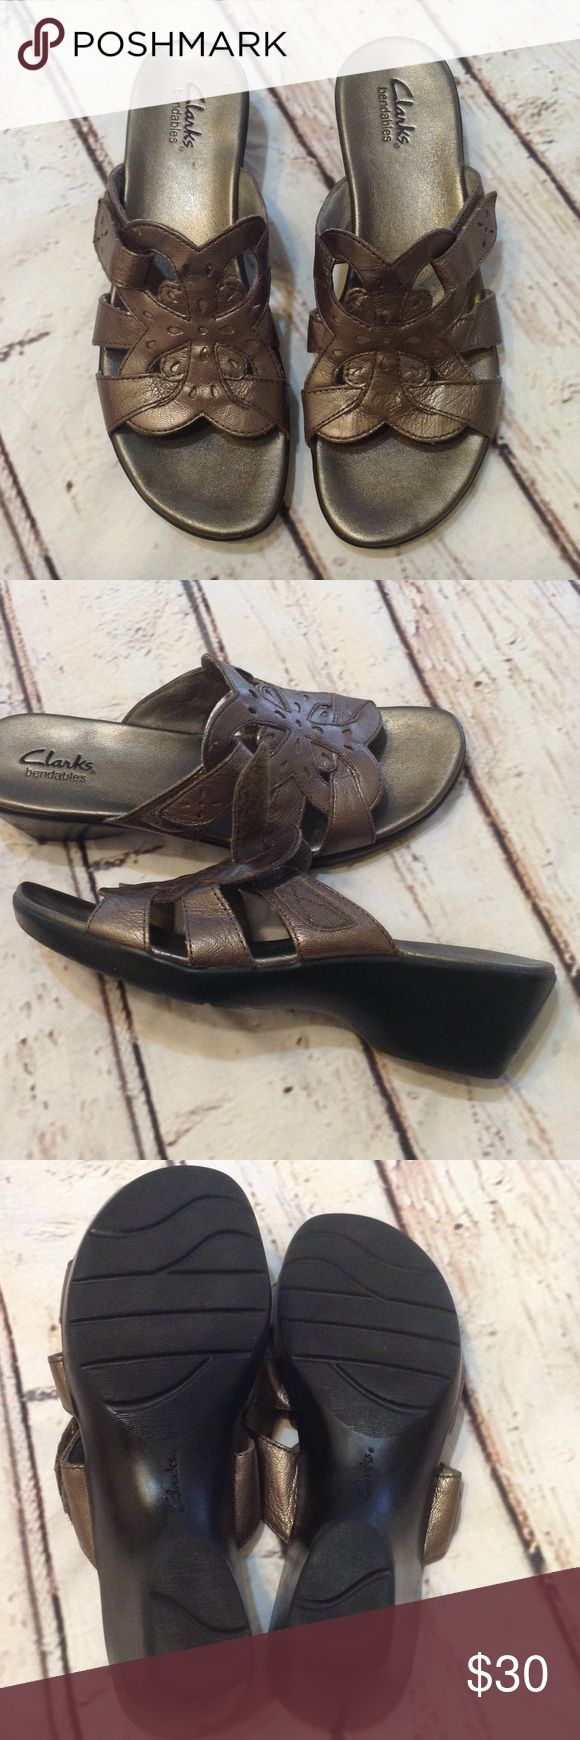 Clarks Sandals size 8 1/2 Clarks sandals size 8 1/2 USA,   Good condition,  thank you for looking Clarks Shoes Sandals